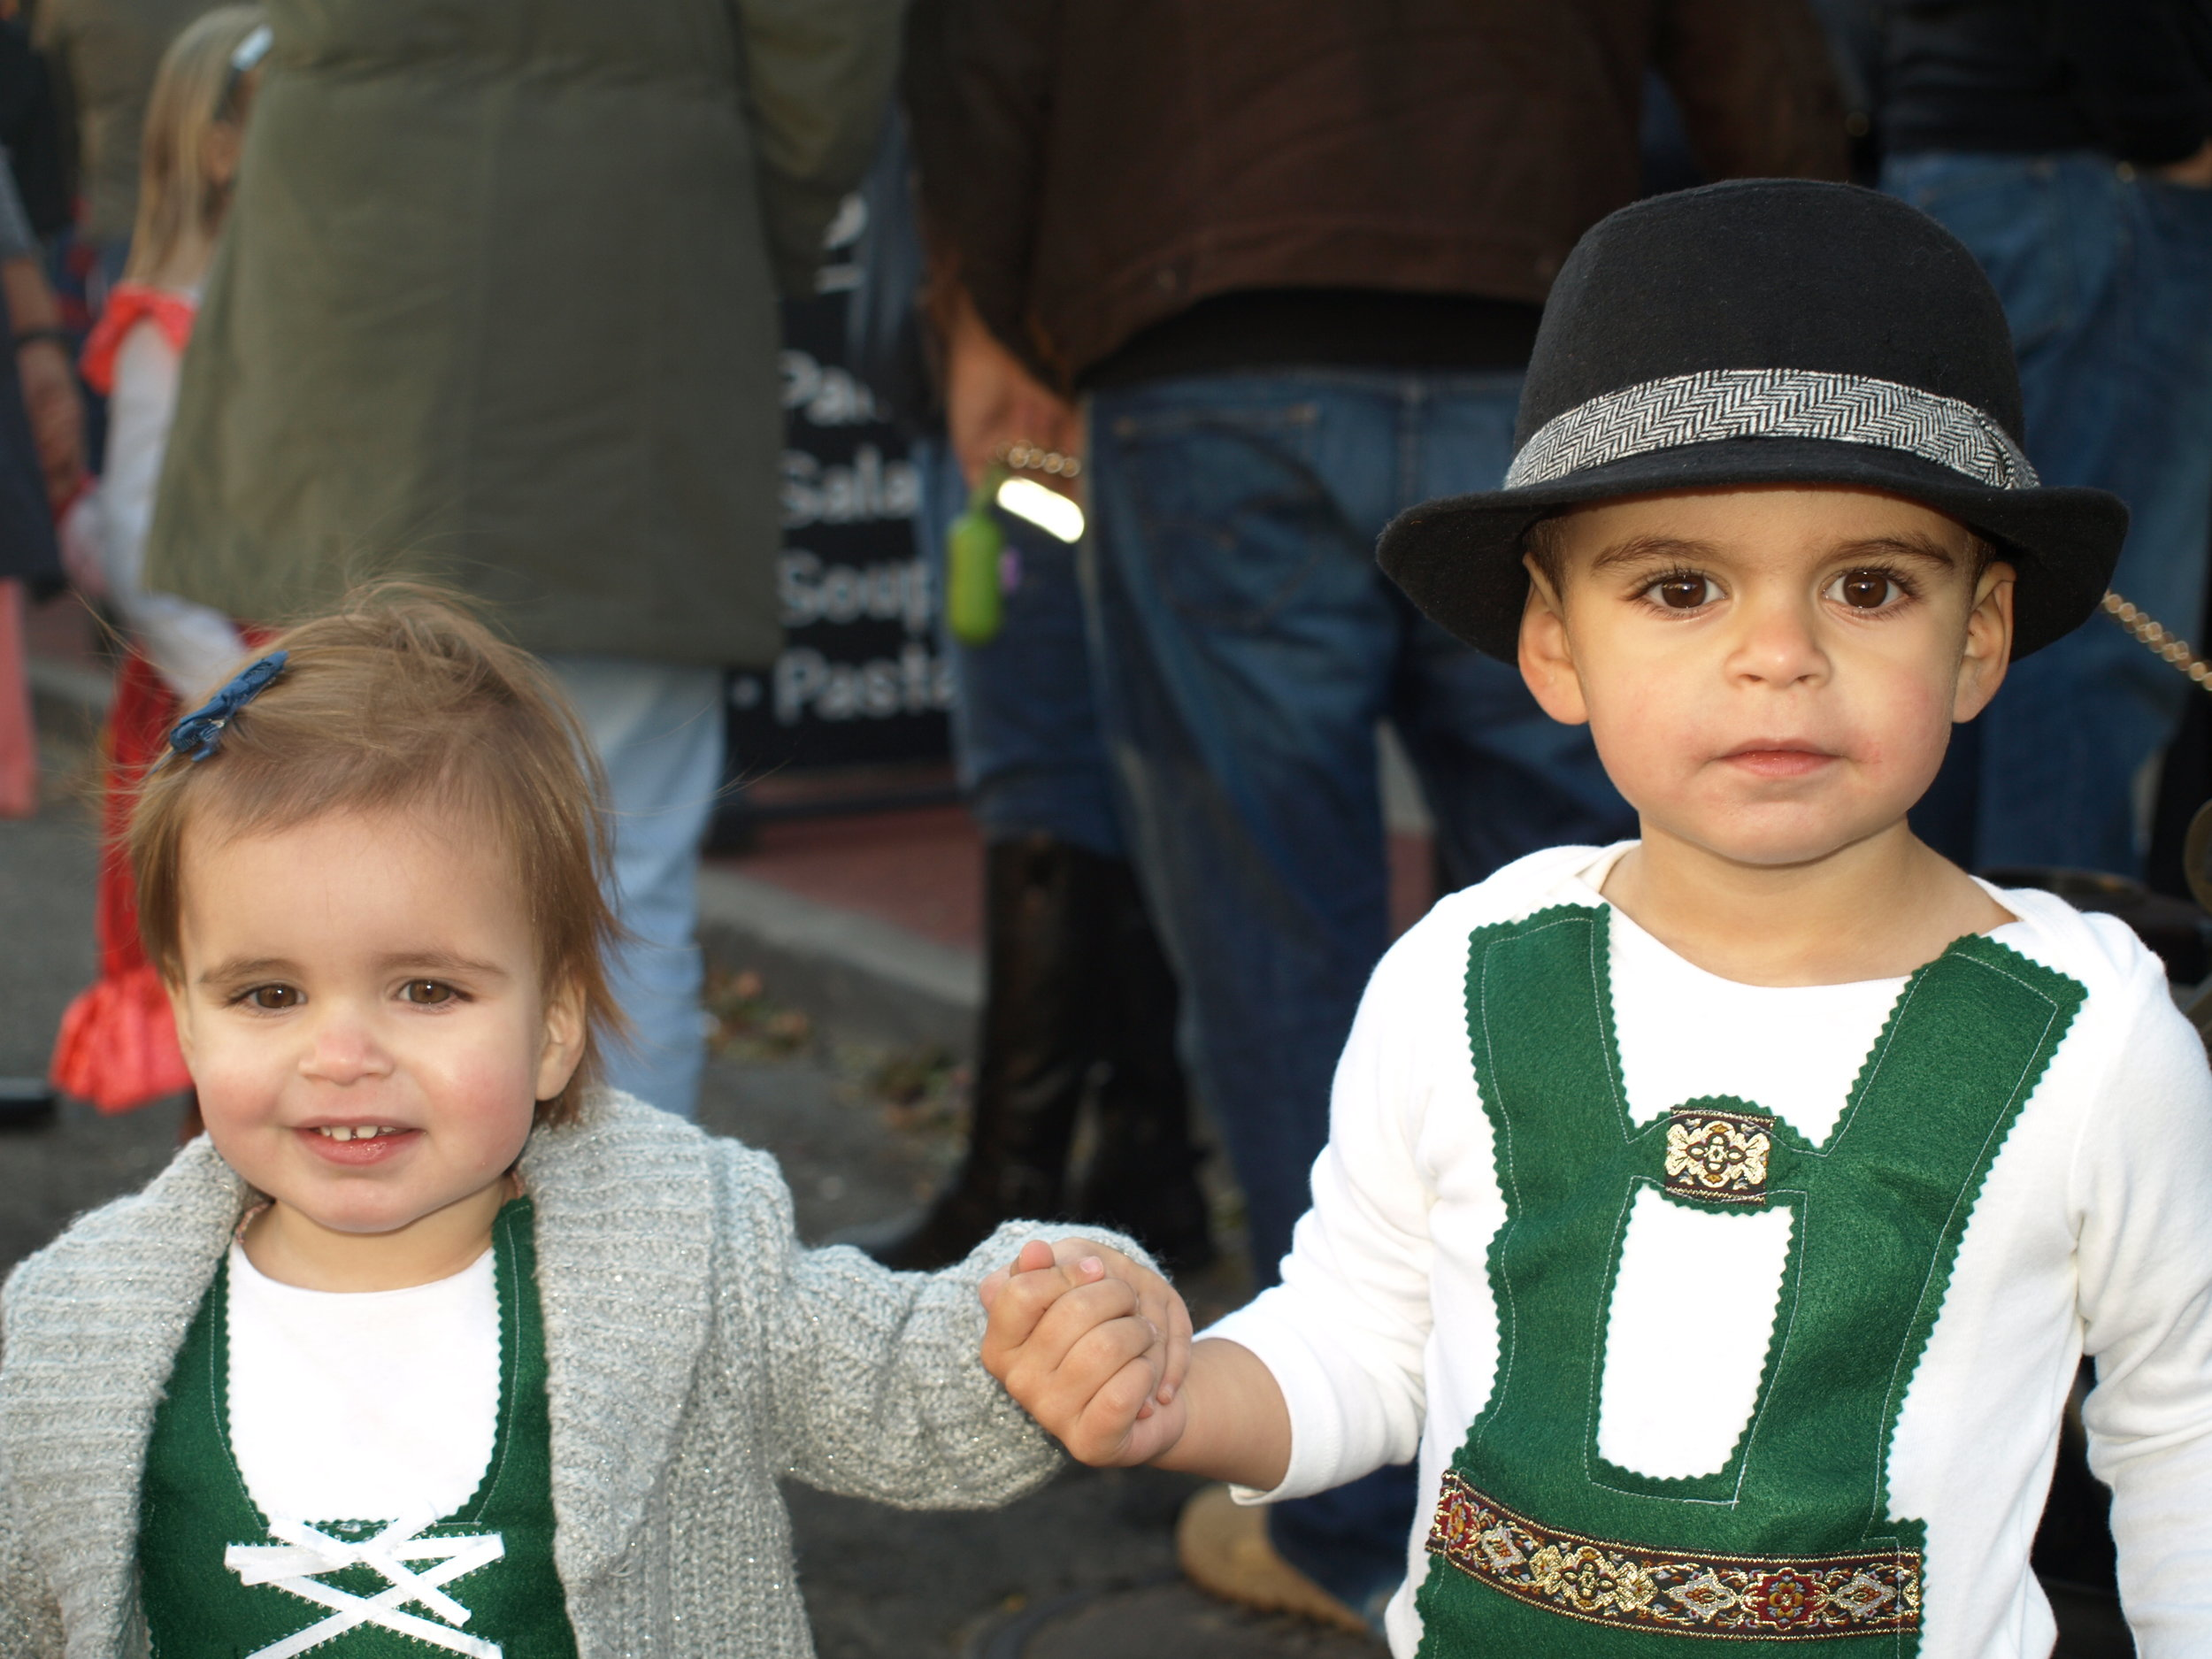 Charlotte, 1, and Henry, 2, Greenberg dressed as Hansel and Gretel.   Long Islander News Photo/Connor Beach